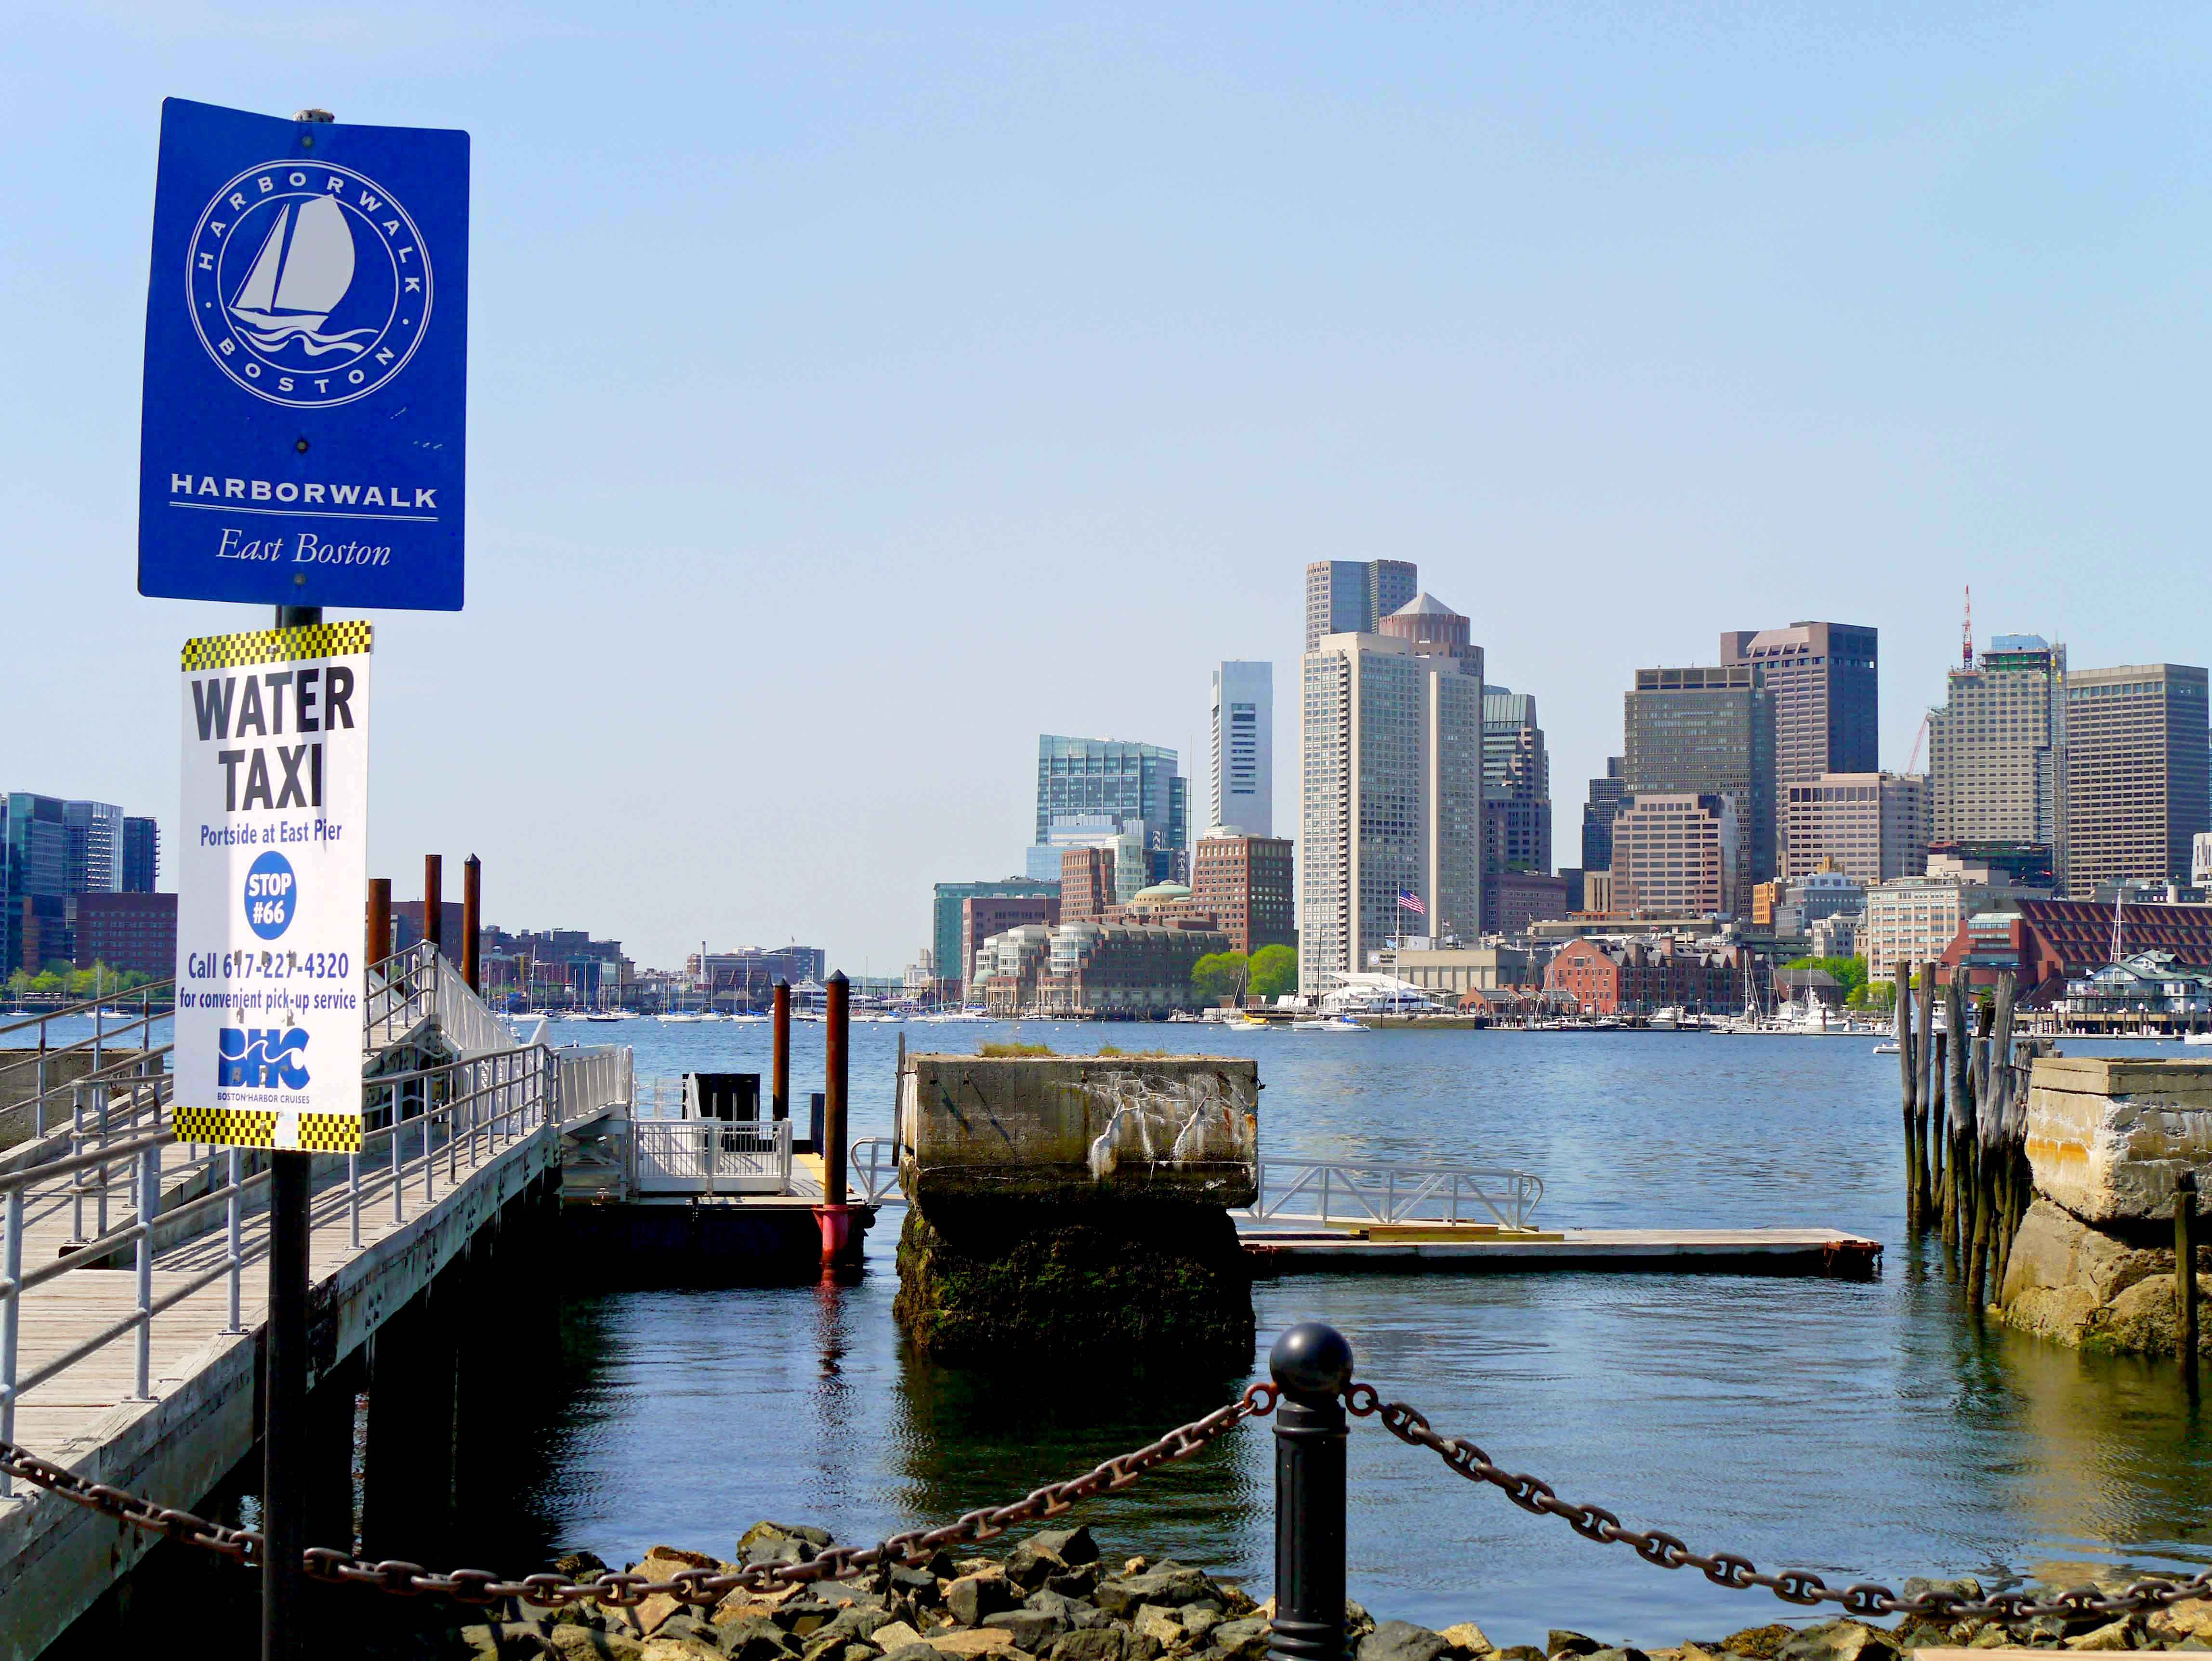 There are numerous water taxi stops along the East Boston Harborwalk.